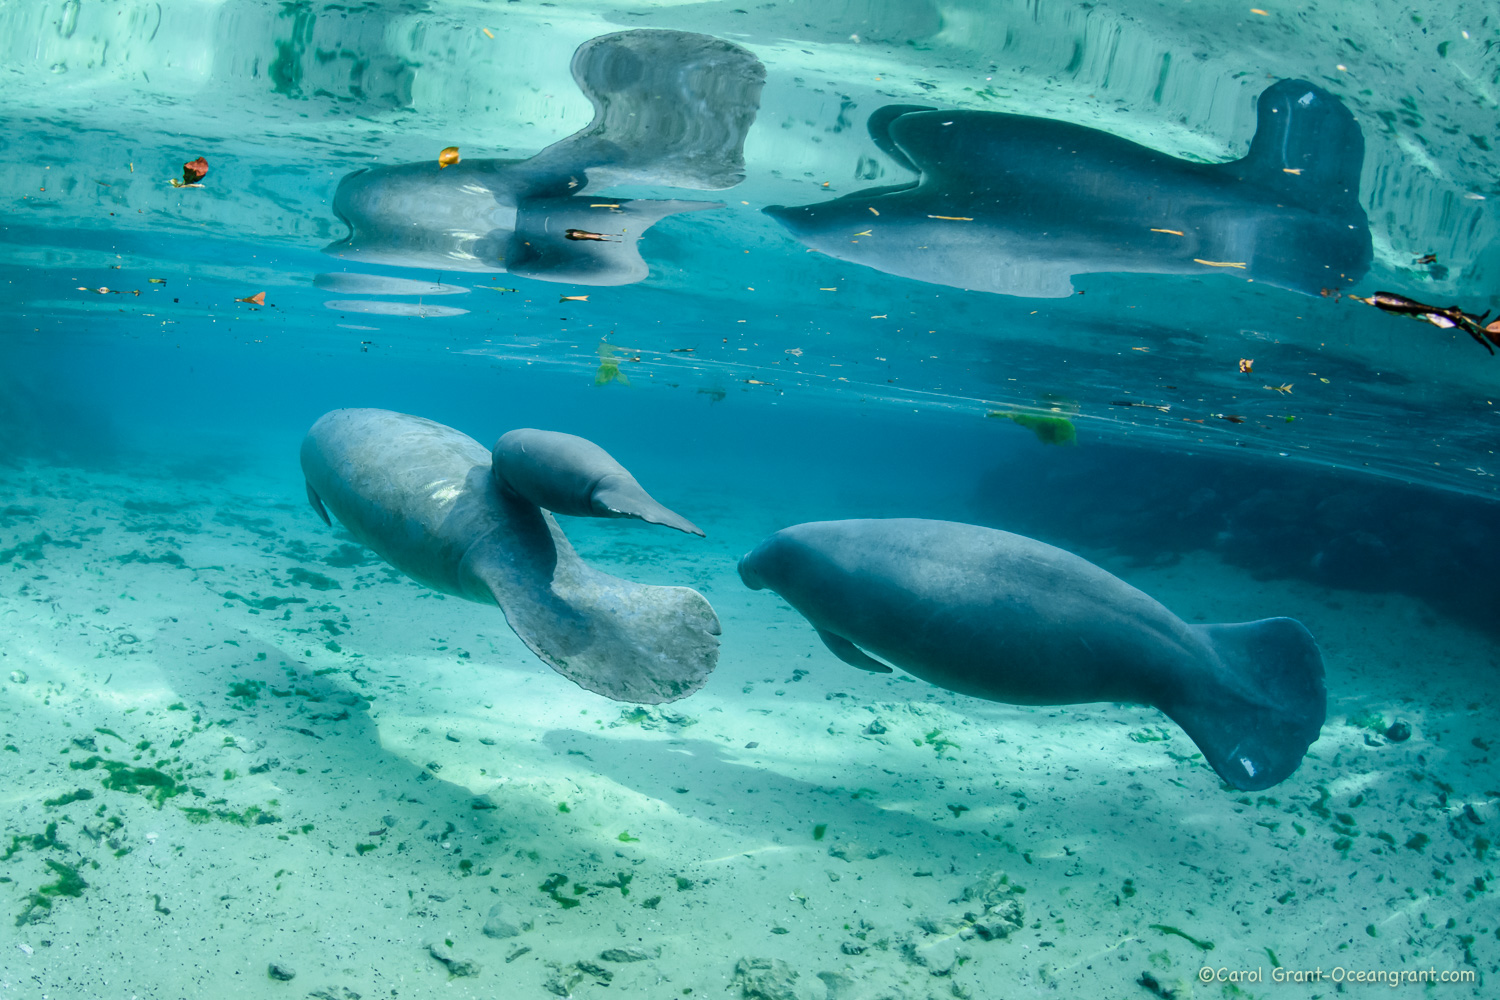 Manatees-mom young calf male follow,©CGrant-oceangrant.com